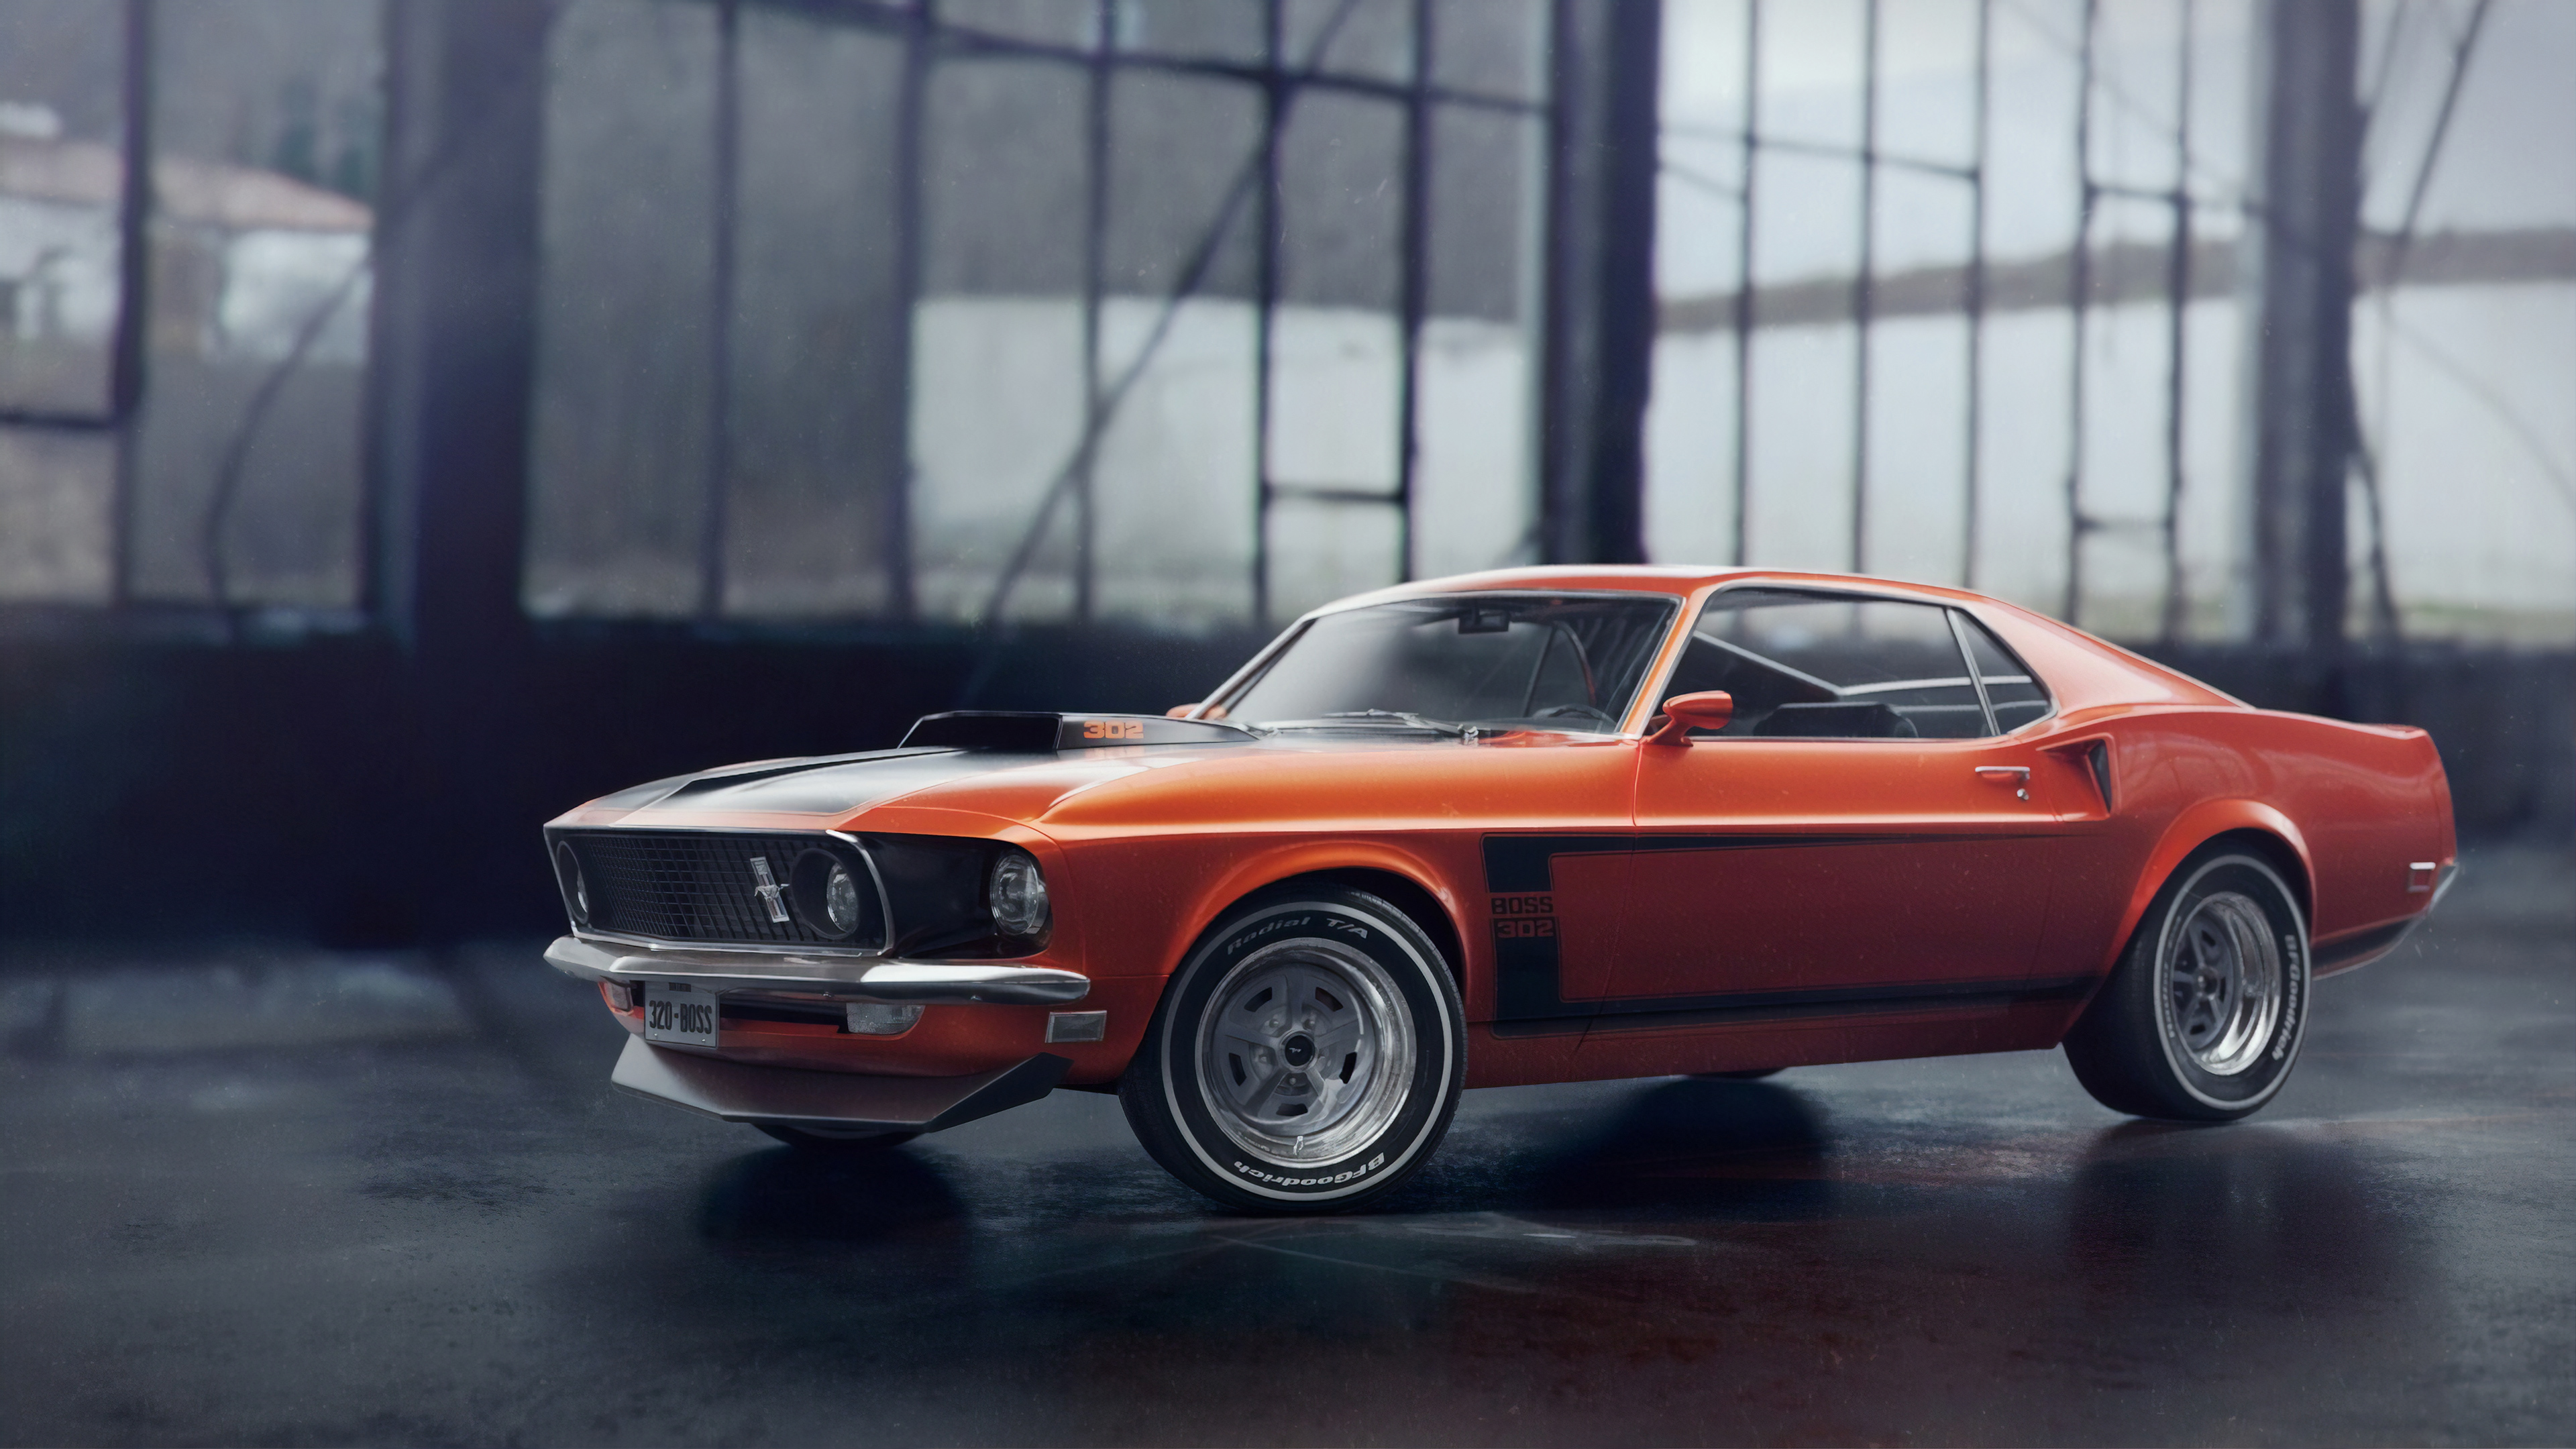 4k ford mustang 1560534087 - 4k Ford Mustang - hd-wallpapers, ford wallpapers, ford mustang wallpapers, digital art wallpapers, cars wallpapers, artwork wallpapers, artist wallpapers, 4k-wallpapers